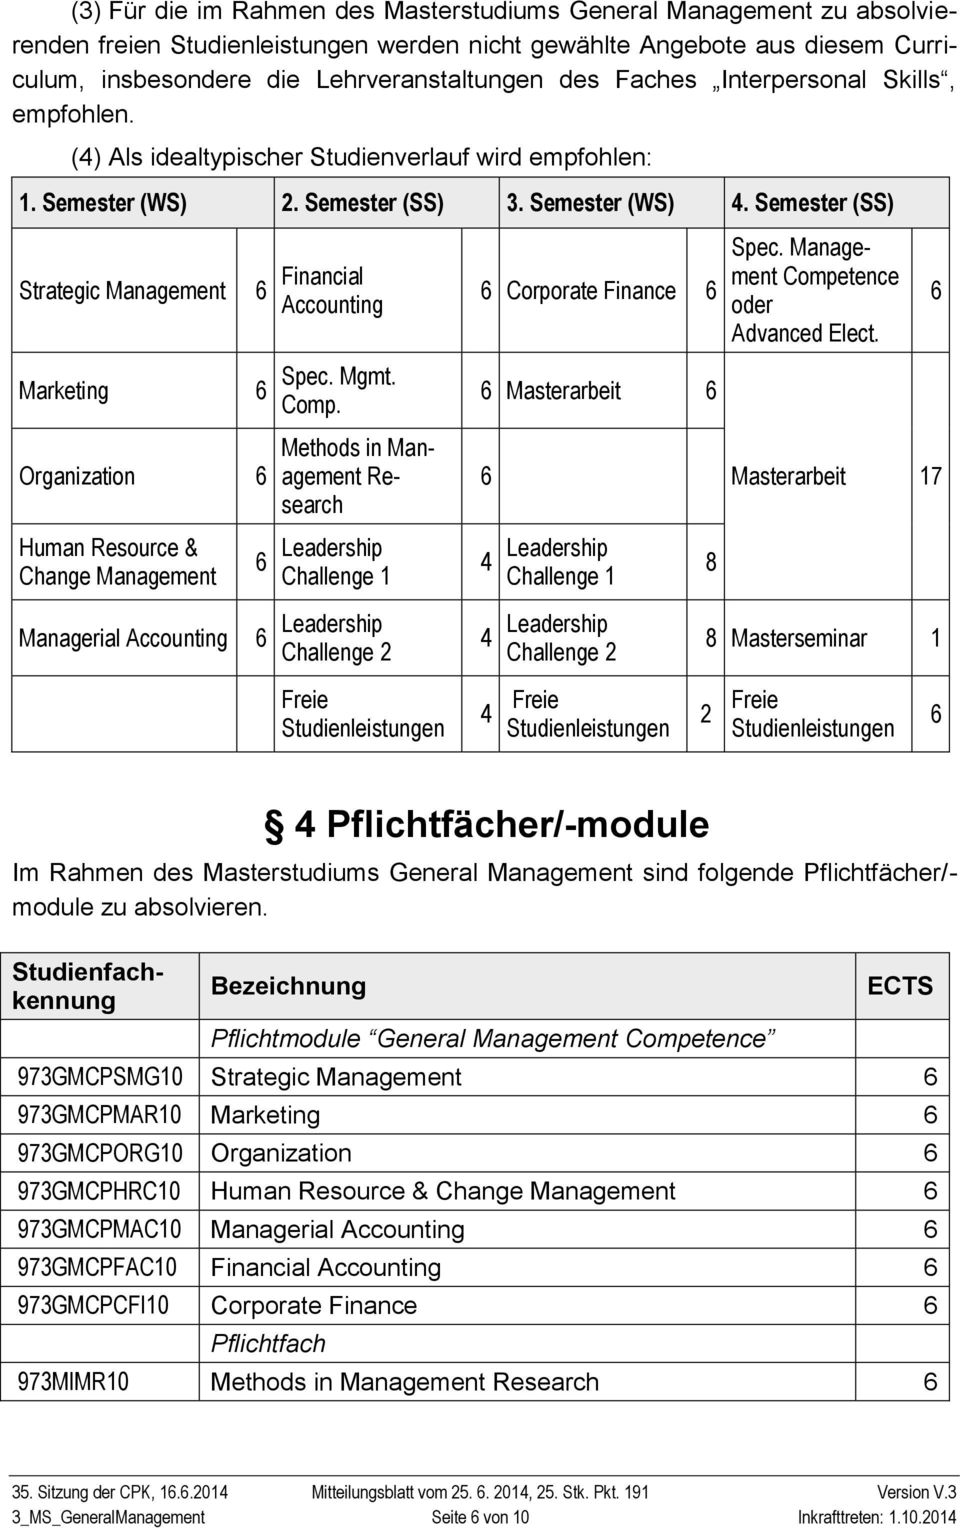 Semester (SS) Strategic Management 6 Financial Accounting 6 Corporate Finance 6 Spec. Management Competence oder Advanced Elect. 6 Marketing Organization 6 Human Resource & Change Management 6 Spec.